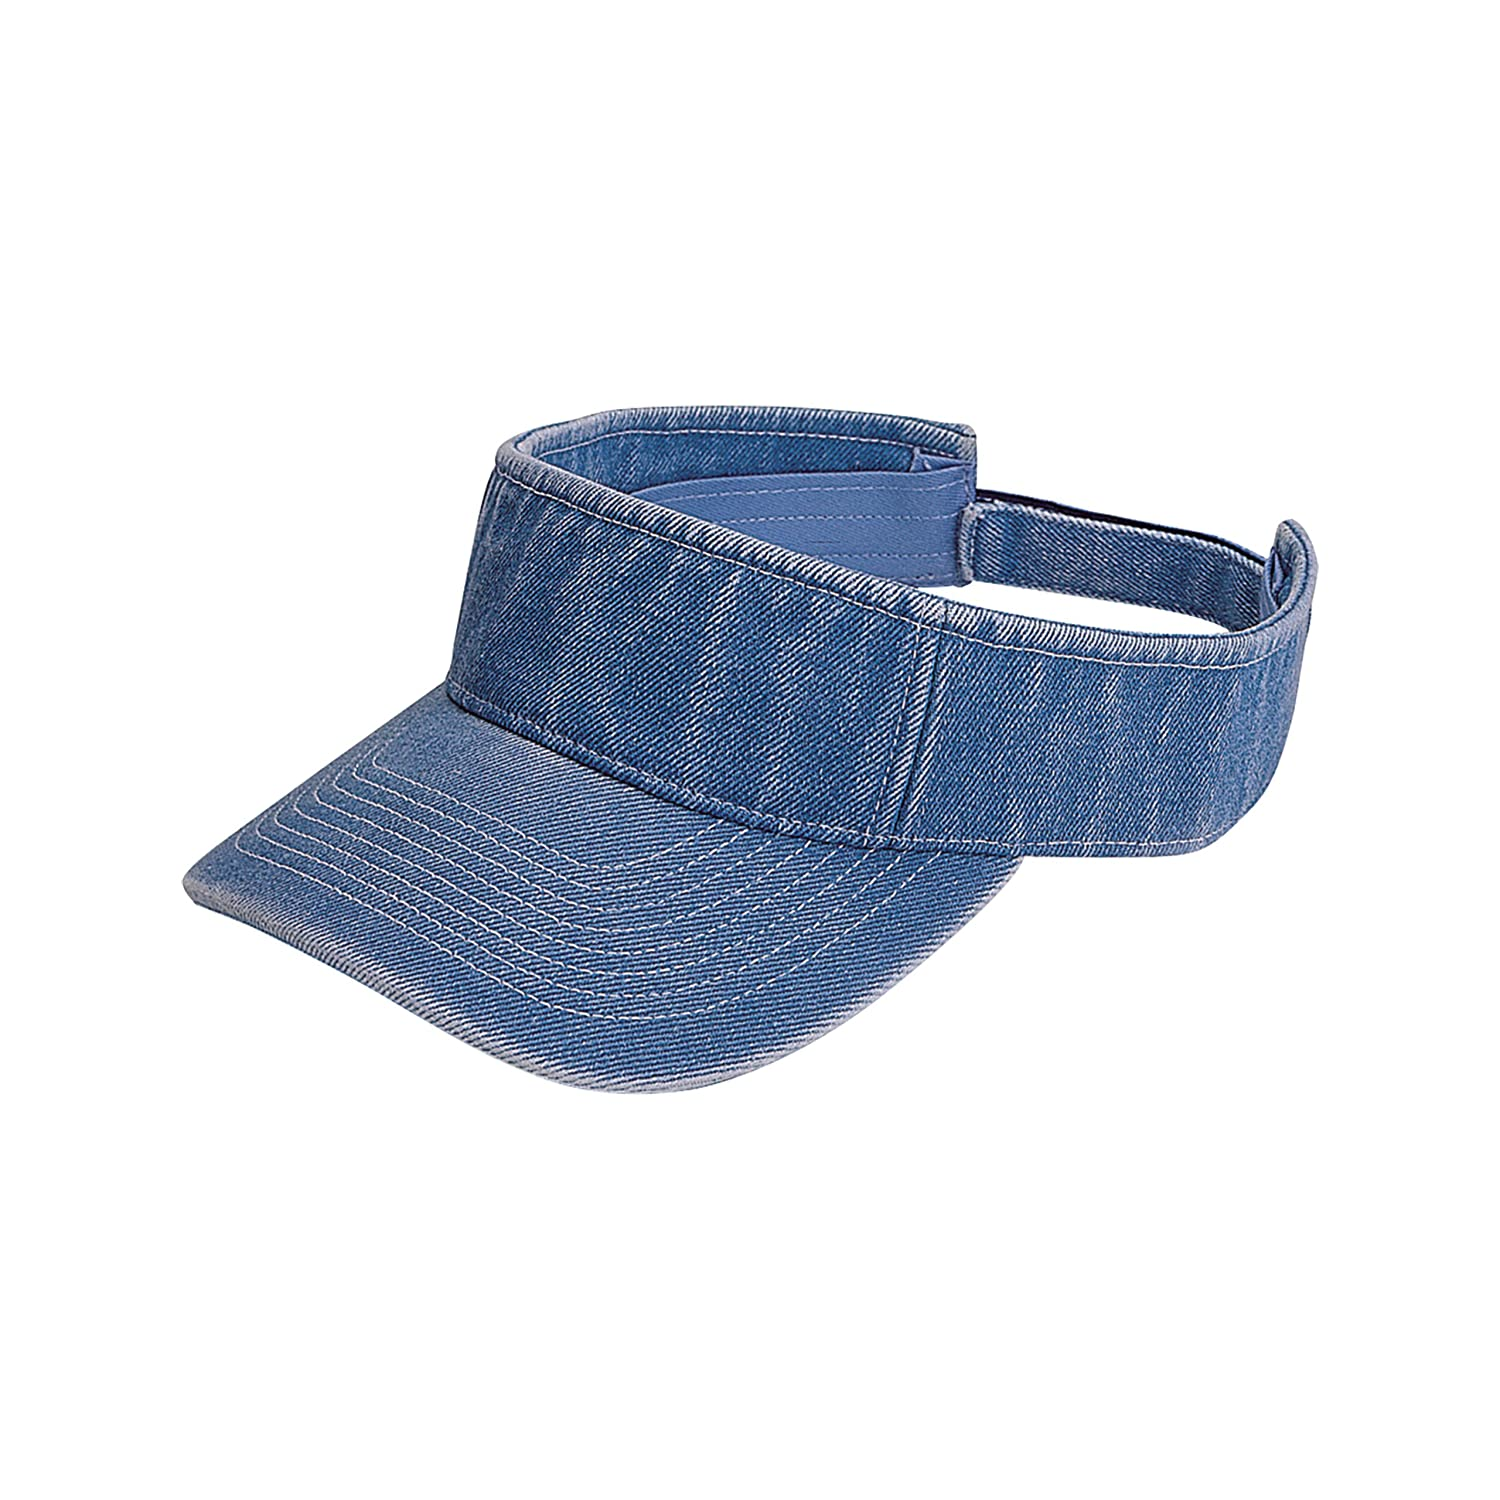 MG Unisex Pro Style Washed Denim Visor-4029 4029-D.NAVY